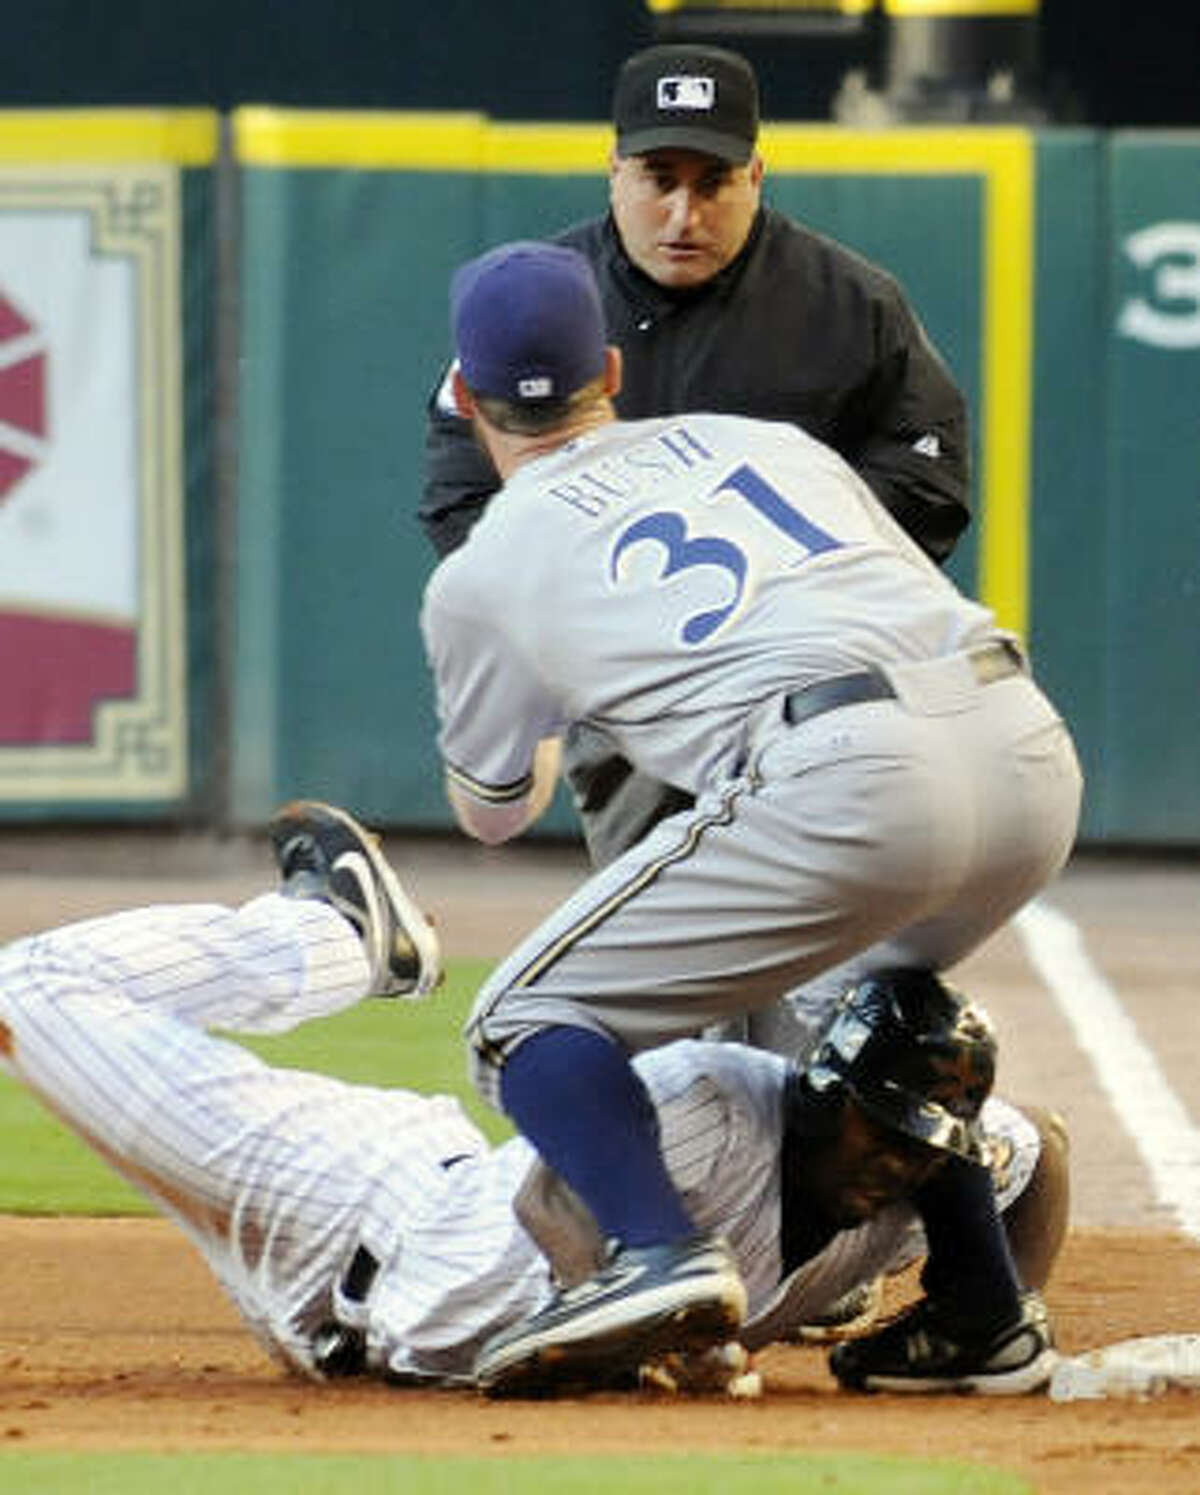 Houston Astros' Michael Bourn returns safely to first as Milwaukee Brewers pitcher Dave Bush shows the ball to first base umpire Eric Cooper in the first inning.